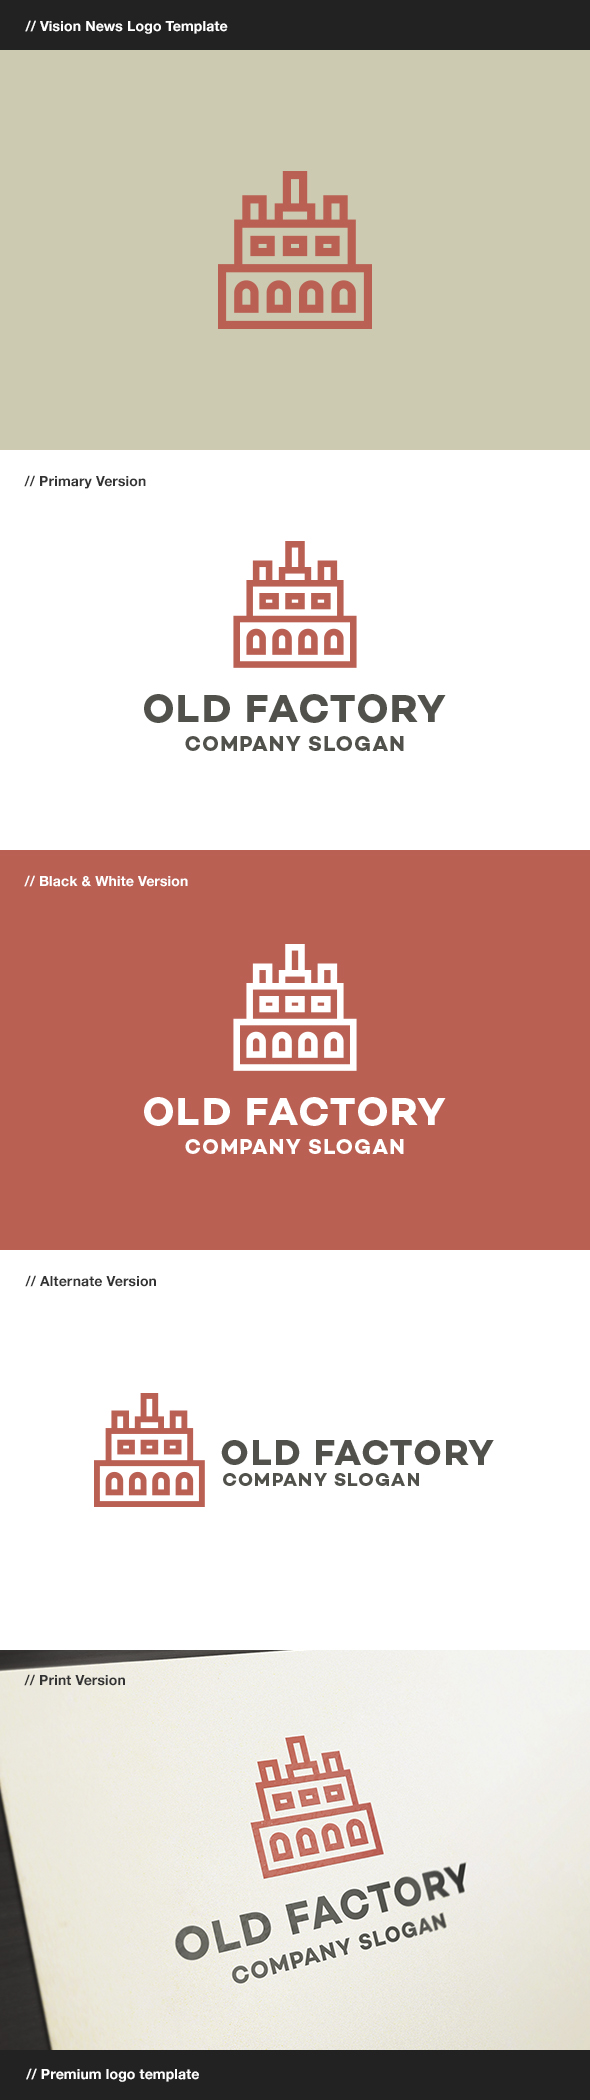 GraphicRiver Old Factory 7942233